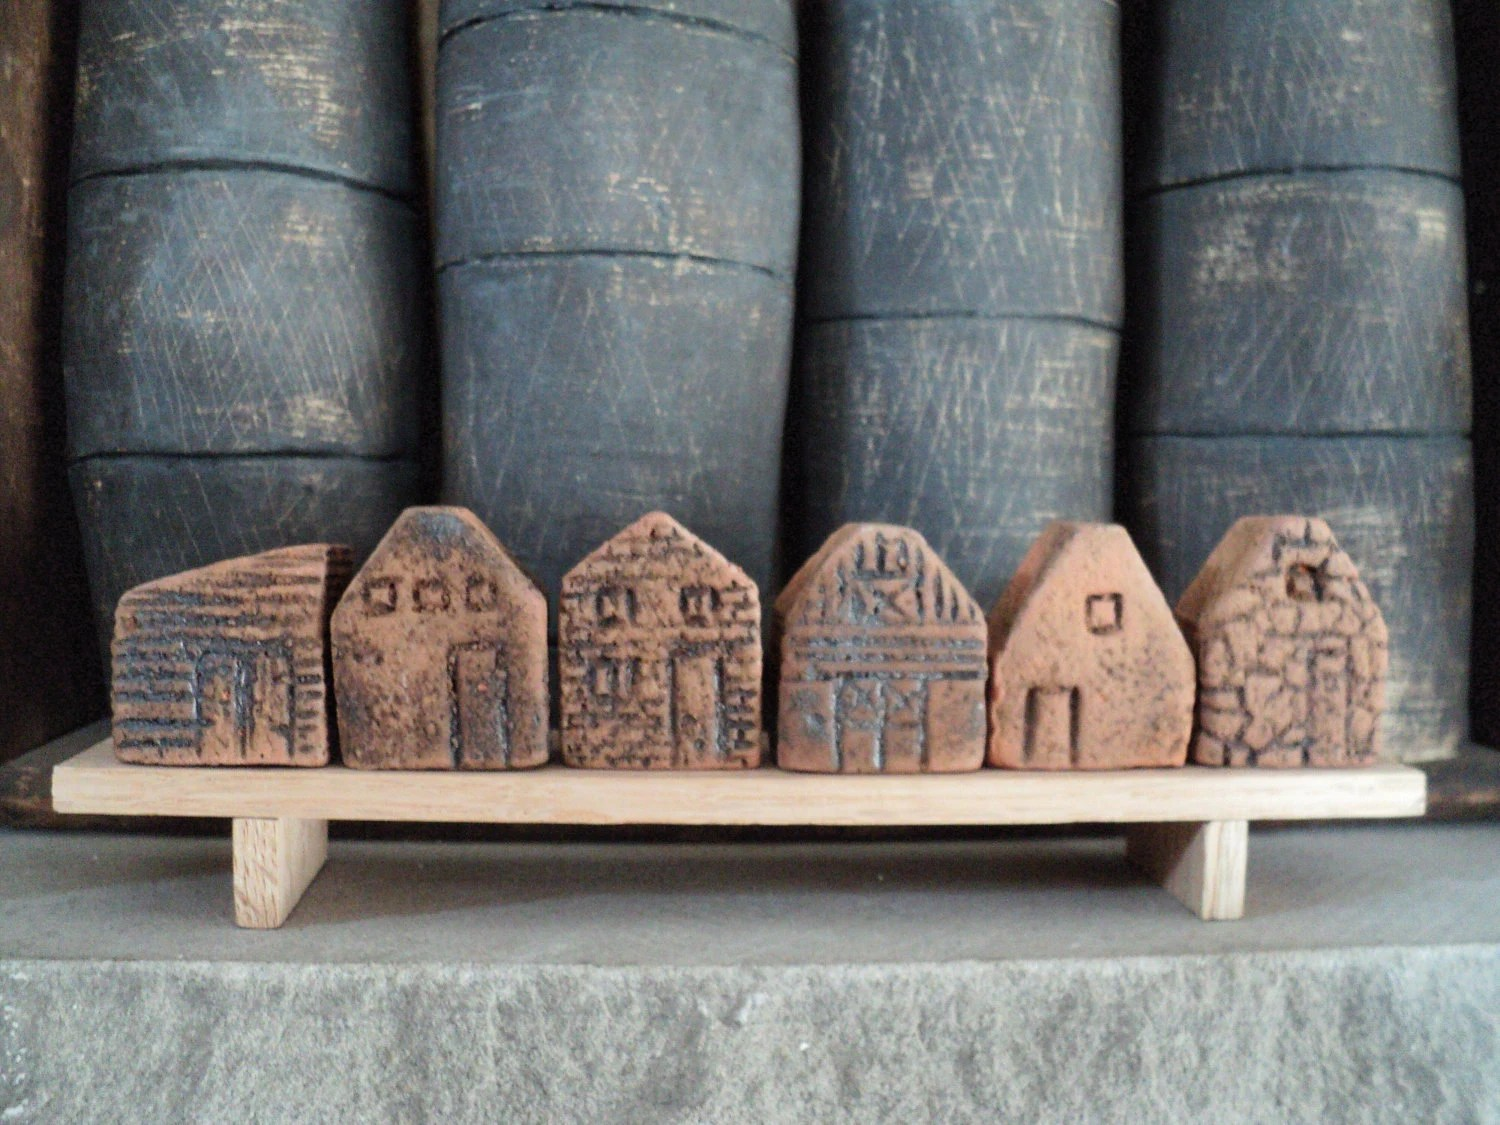 tiny clay houses on a bench - claychickadee